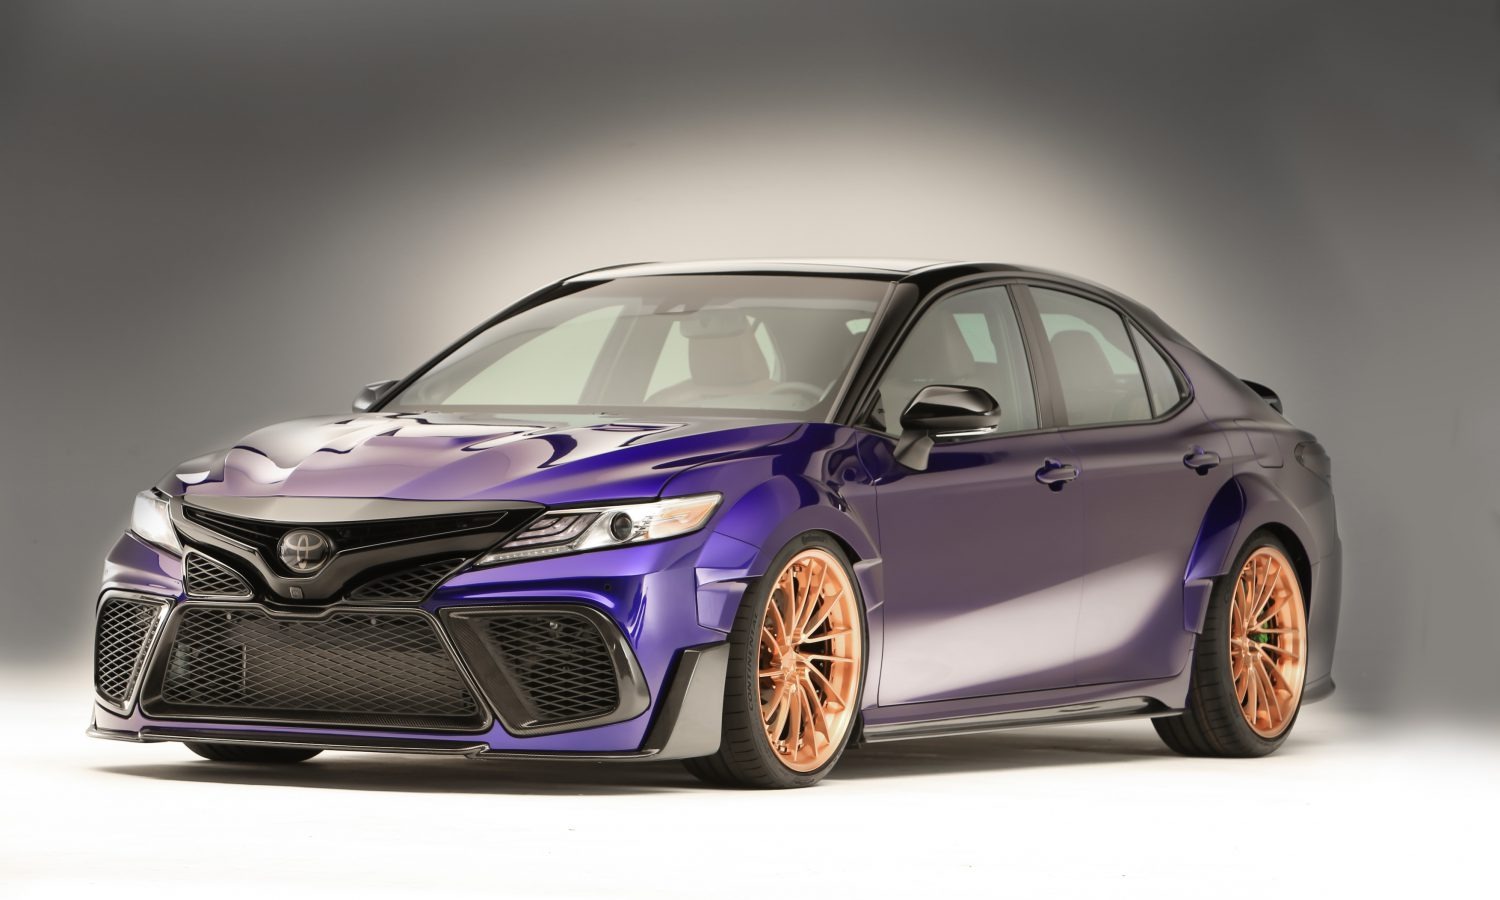 Rutledge Wood Builds a Wide, Eye-Catching 2018 Camry For SEMA 2017